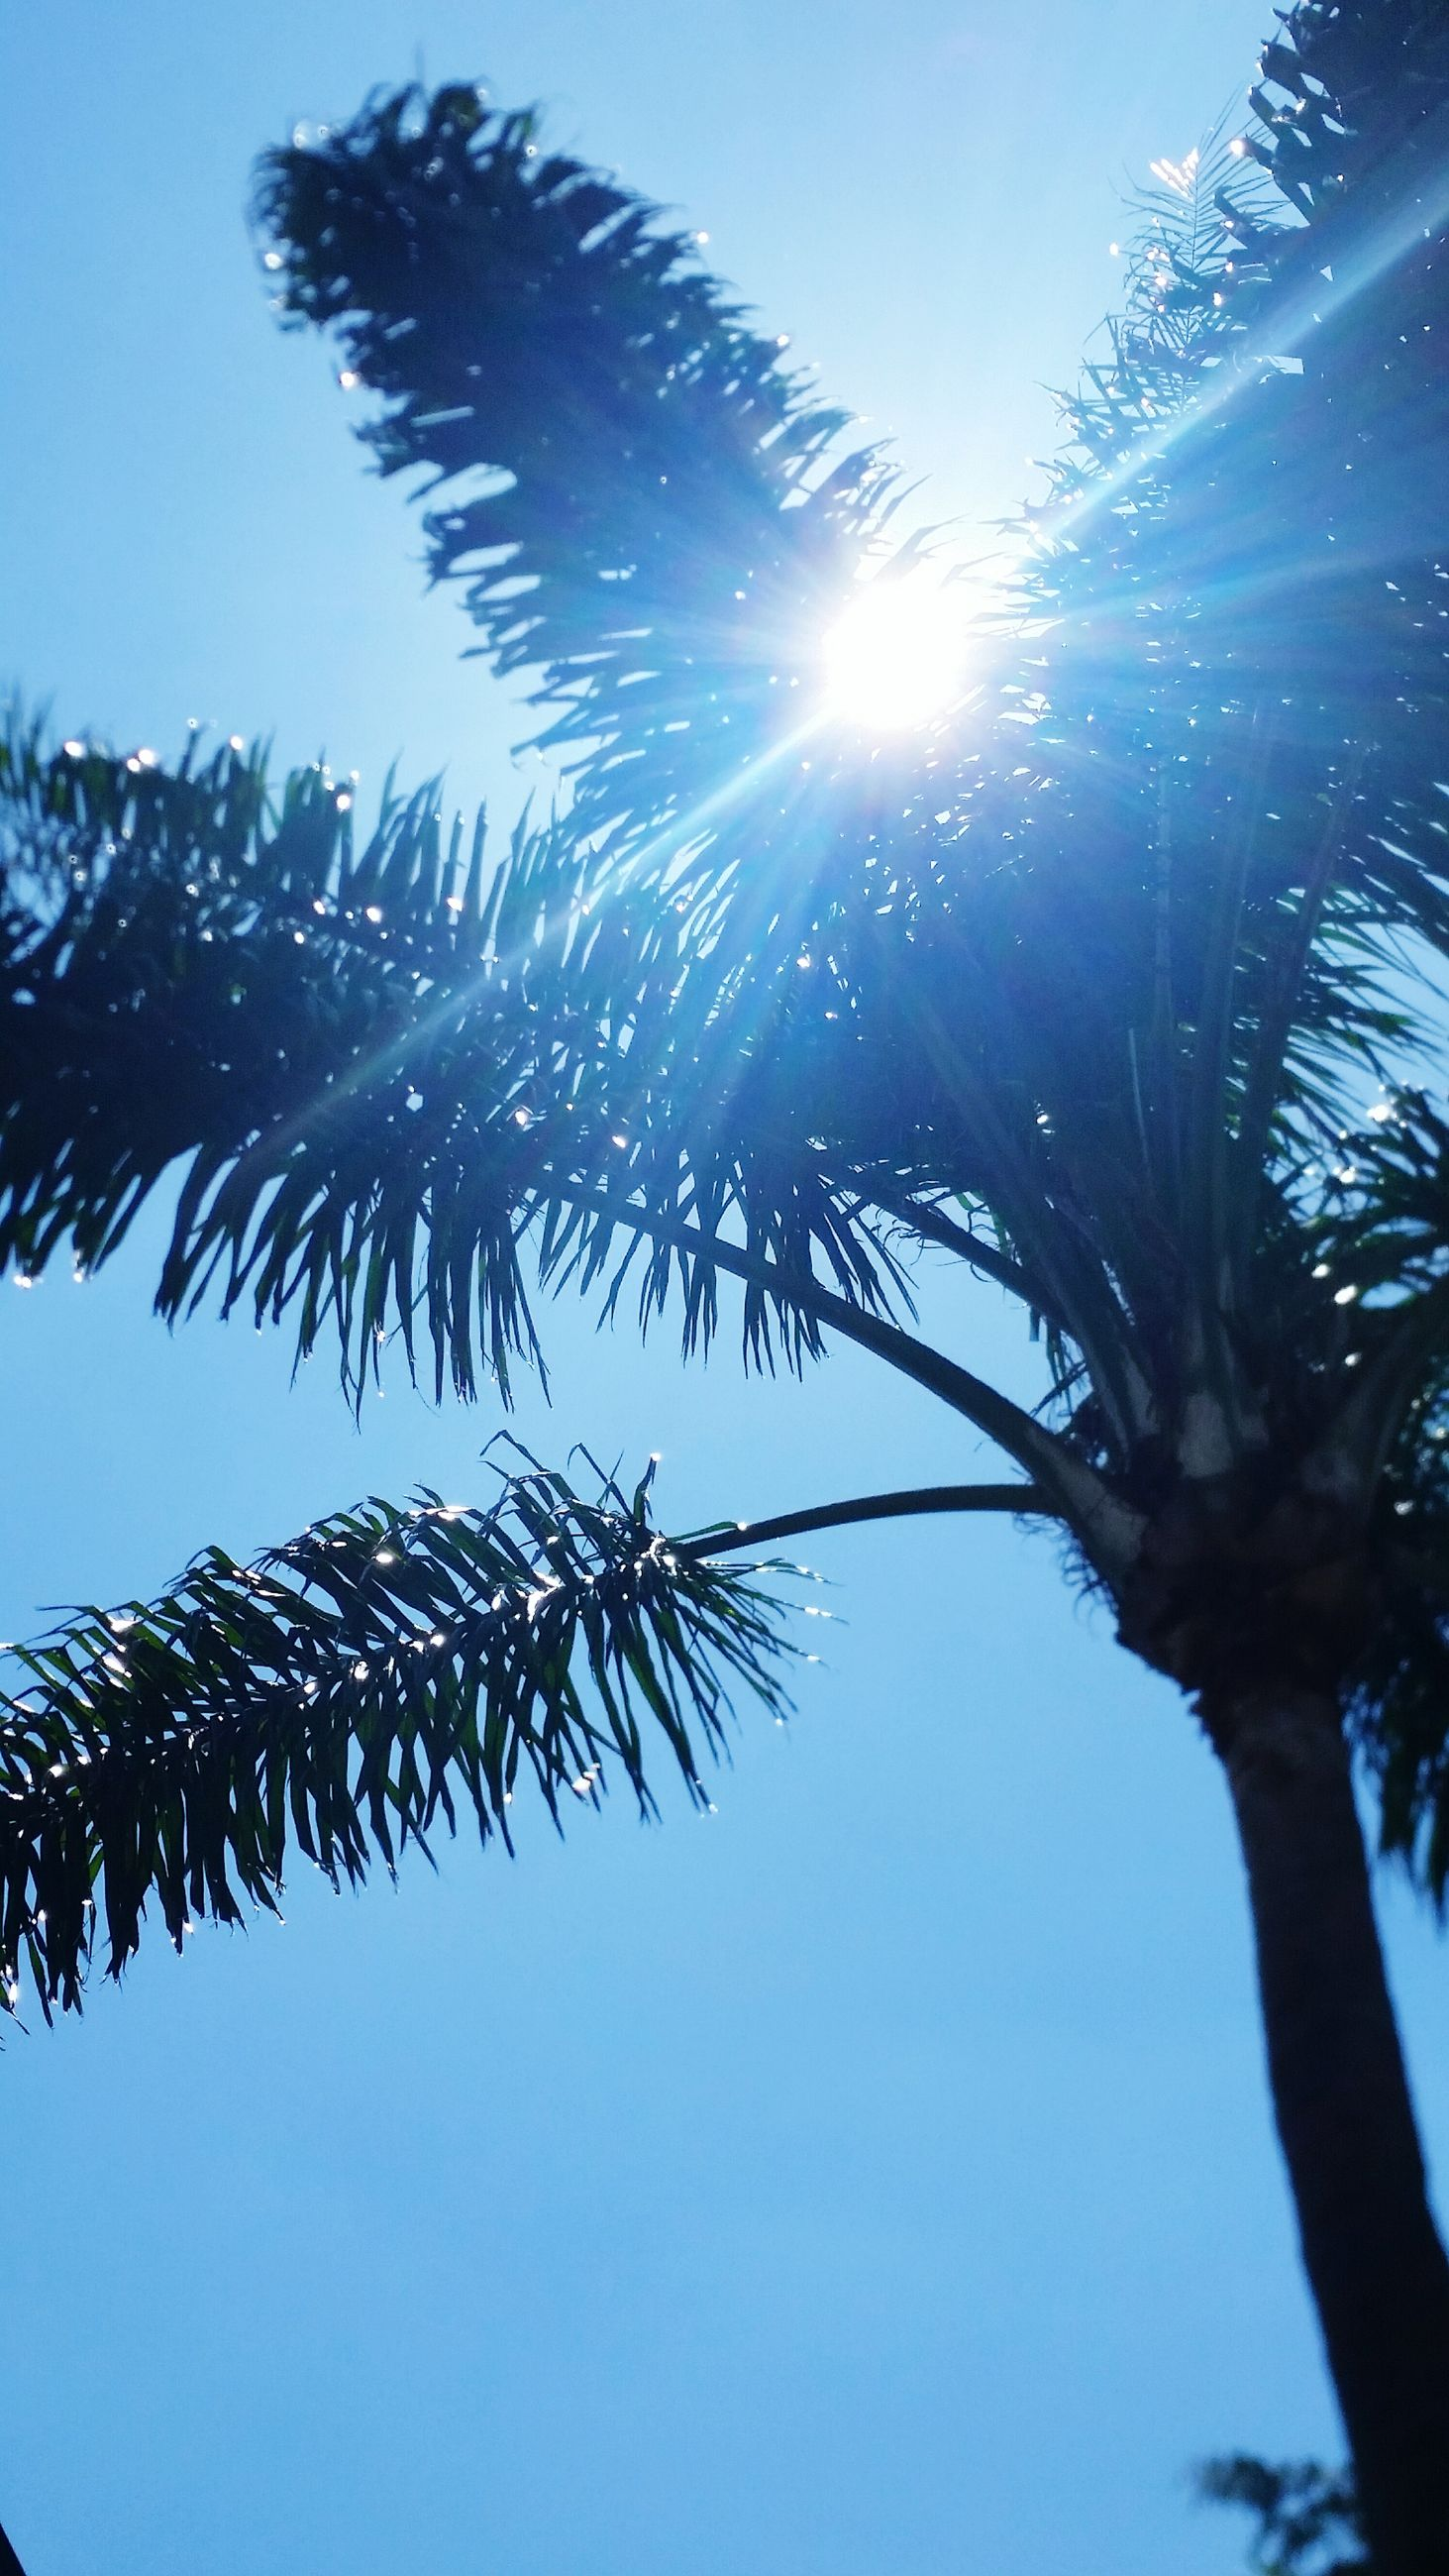 low angle view, tree, sun, clear sky, growth, sunlight, blue, branch, nature, tranquility, sunbeam, beauty in nature, palm tree, sky, lens flare, sunny, leaf, silhouette, tree trunk, day